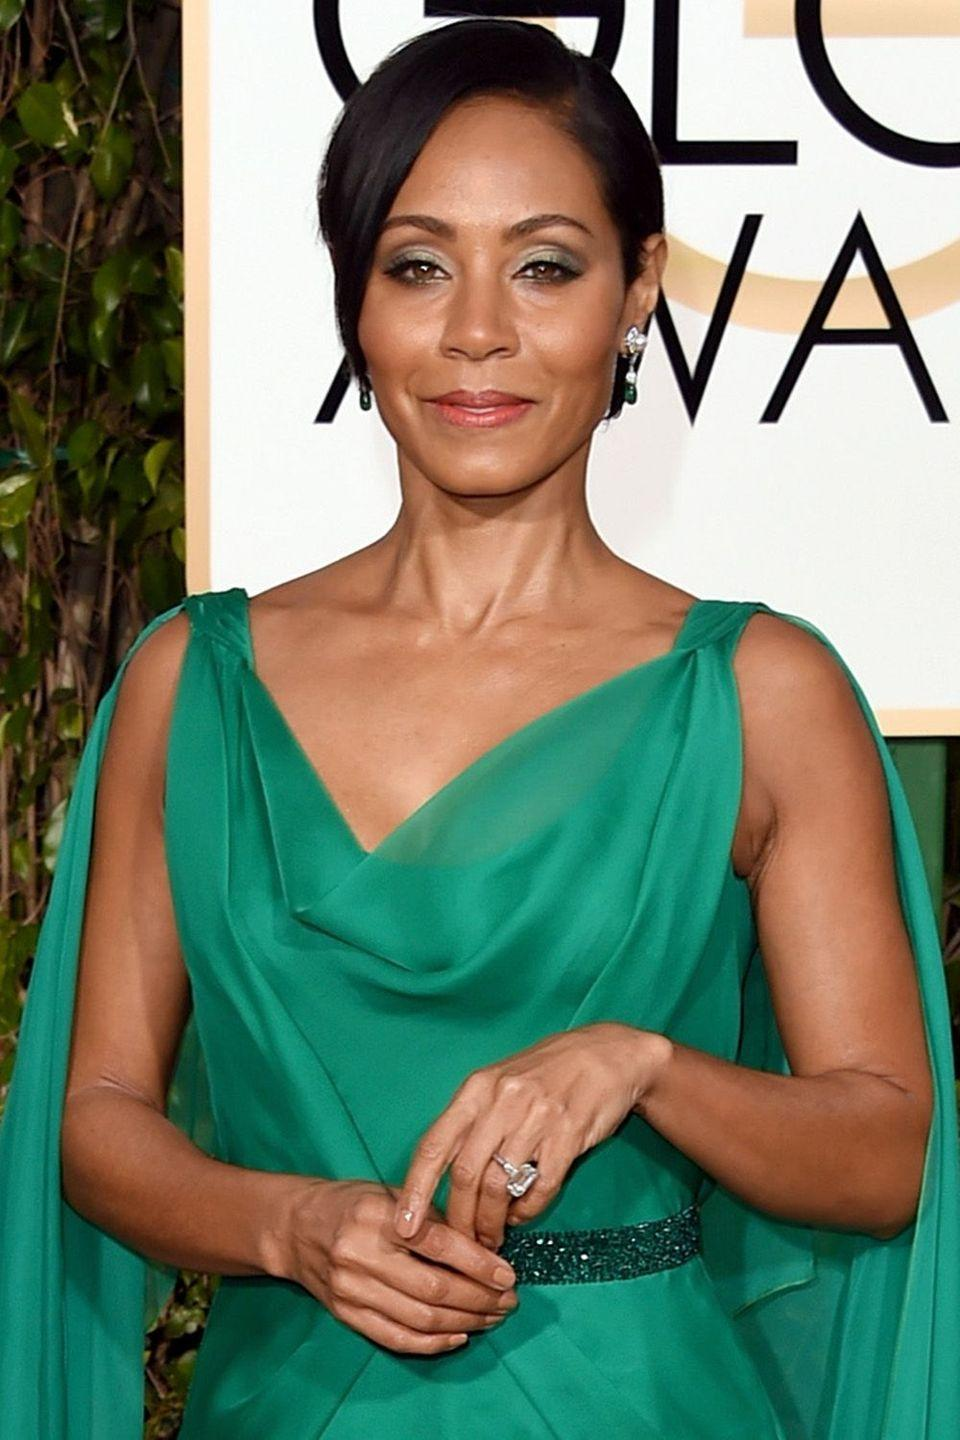 """<p>In a 2010 <a href=""""http://www.usmagazine.com/entertainment/news/25-things-you-dont-know-about-me-jada-pinkett-smith-201048http://www.usmagazine.com/entertainment/news/25-things-you-dont-know-about-me-jada-pinkett-smith-201048"""" rel=""""nofollow noopener"""" target=""""_blank"""" data-ylk=""""slk:Us Weekly"""" class=""""link rapid-noclick-resp""""><em>Us Weekly</em></a> profile, the actor revealed 25 things the world wouldn't know about her, number five being that she hasn't consumed alcohol since the early 90s. </p>"""